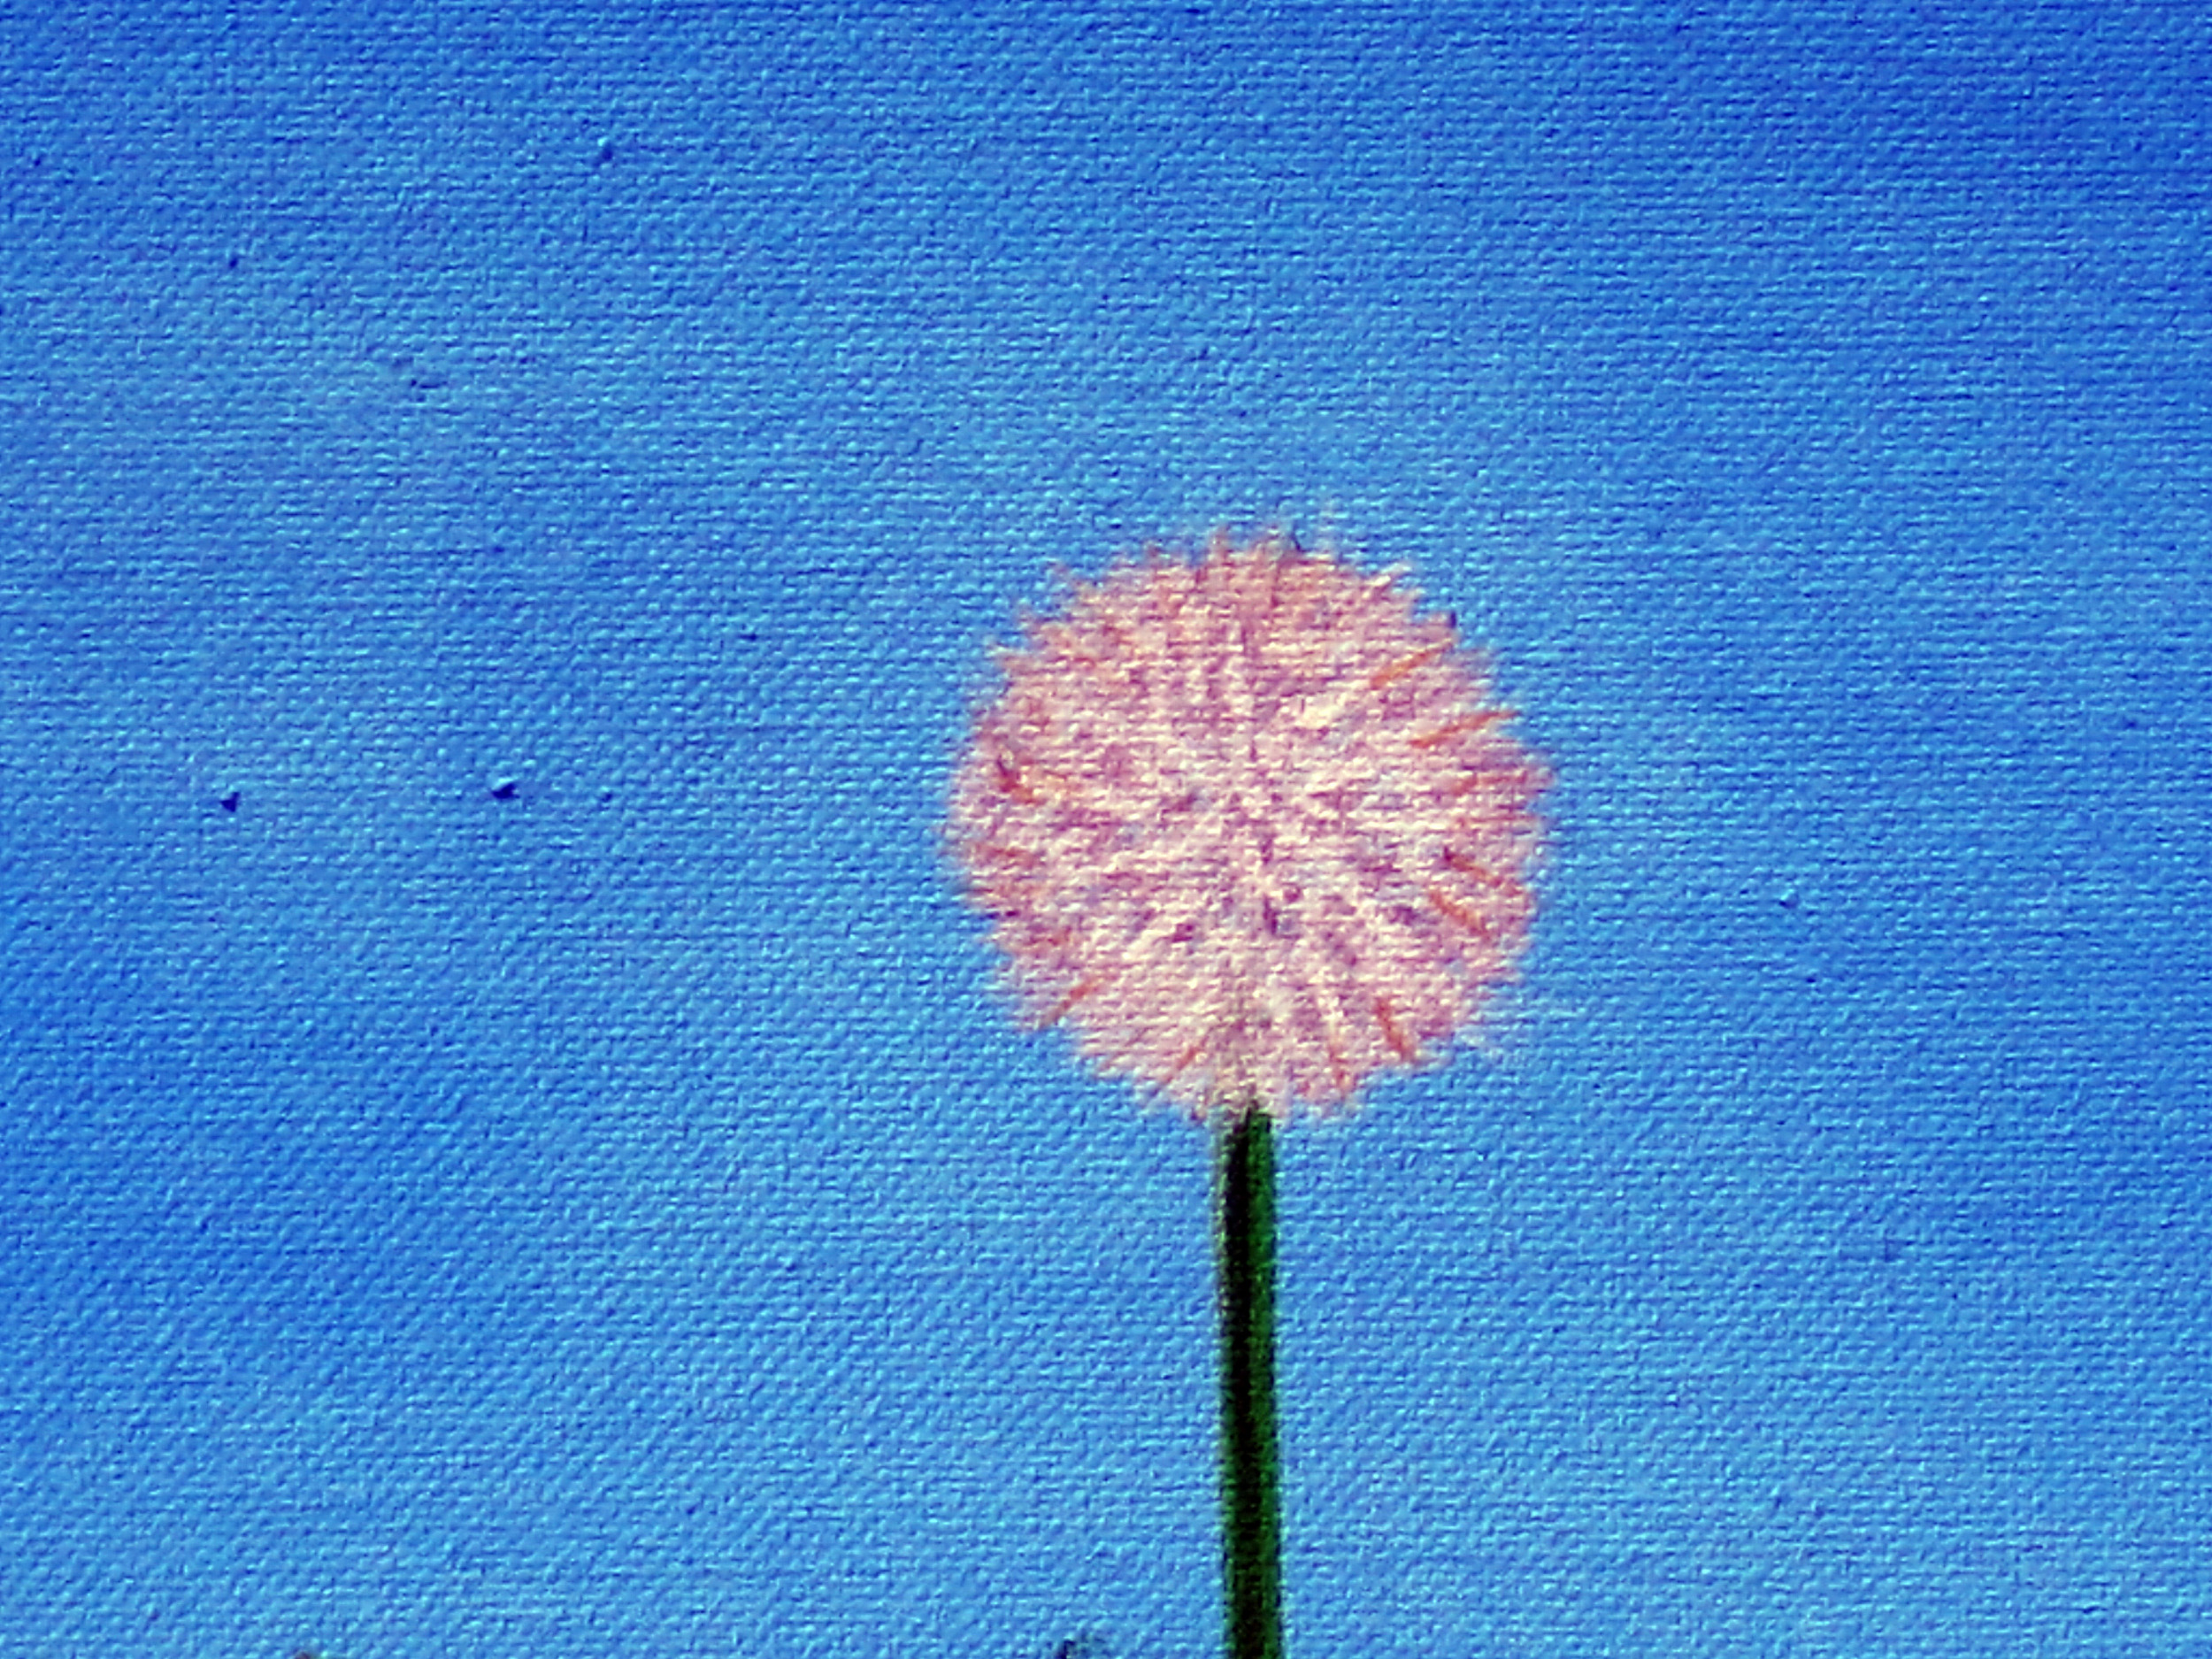 Make a Wish (Detail Image)